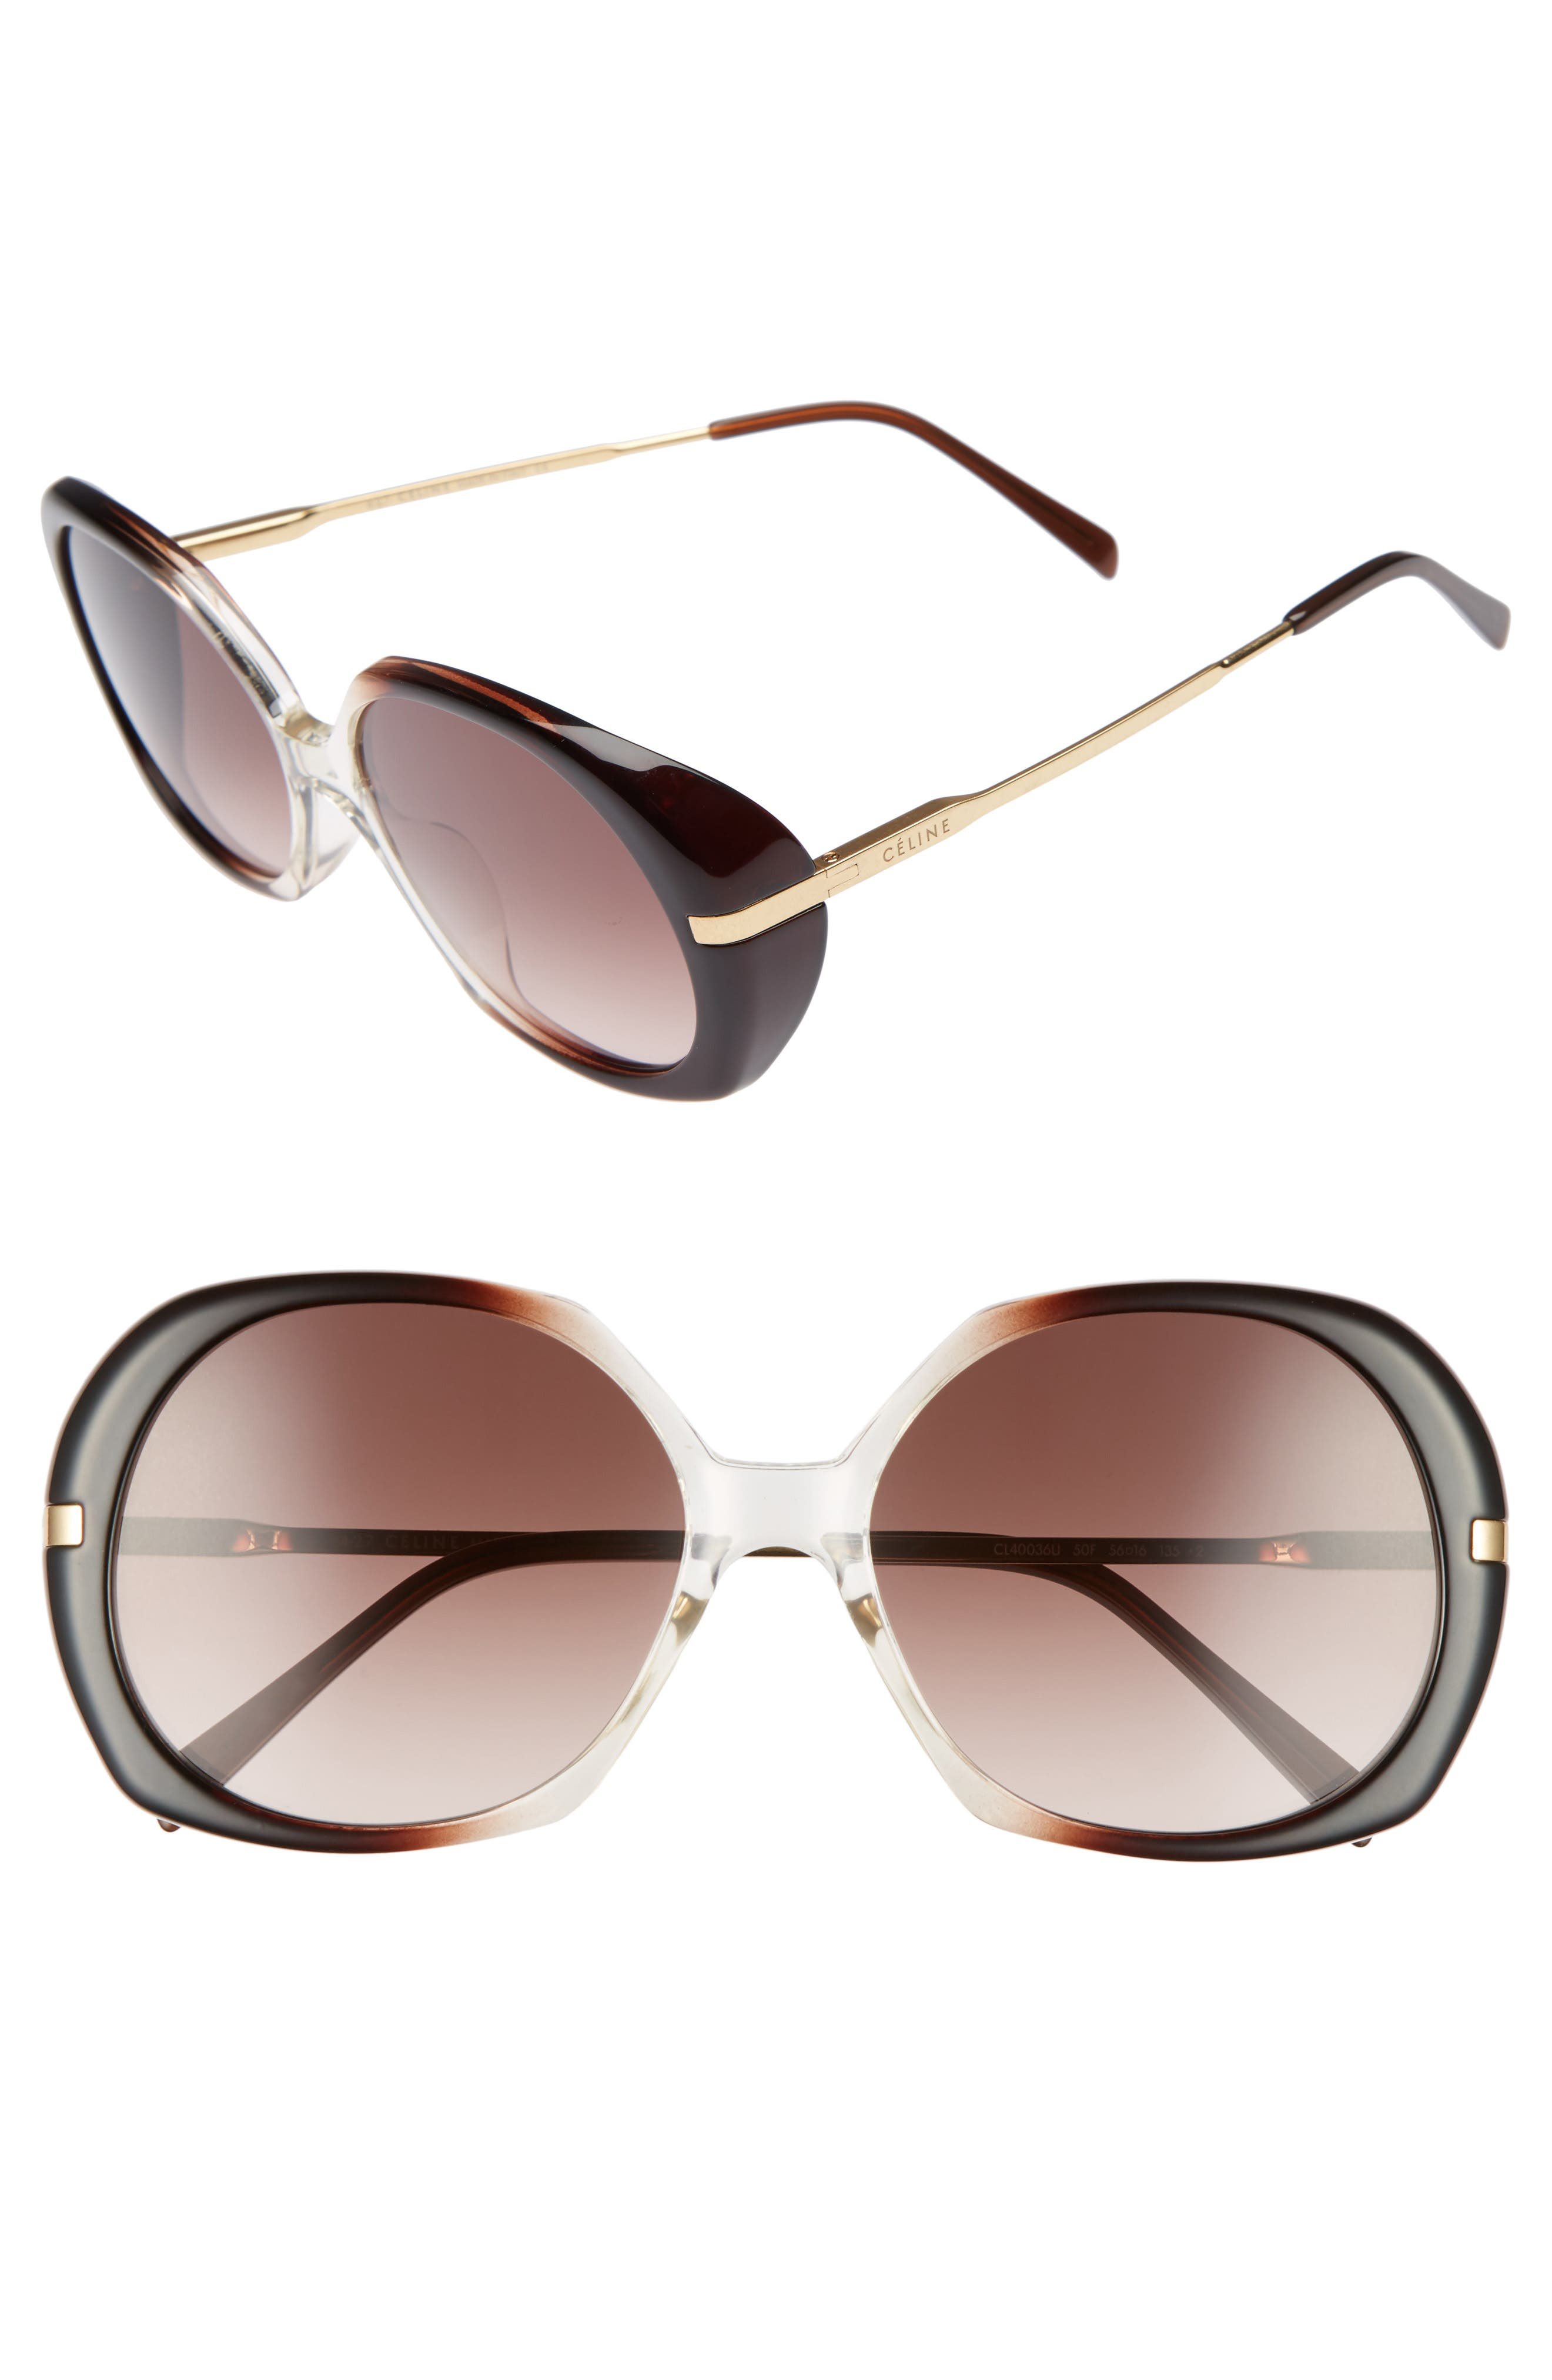 56mm Round Sunglasses,                         Main,                         color, Dark Brown/ Light Gold/ Brown